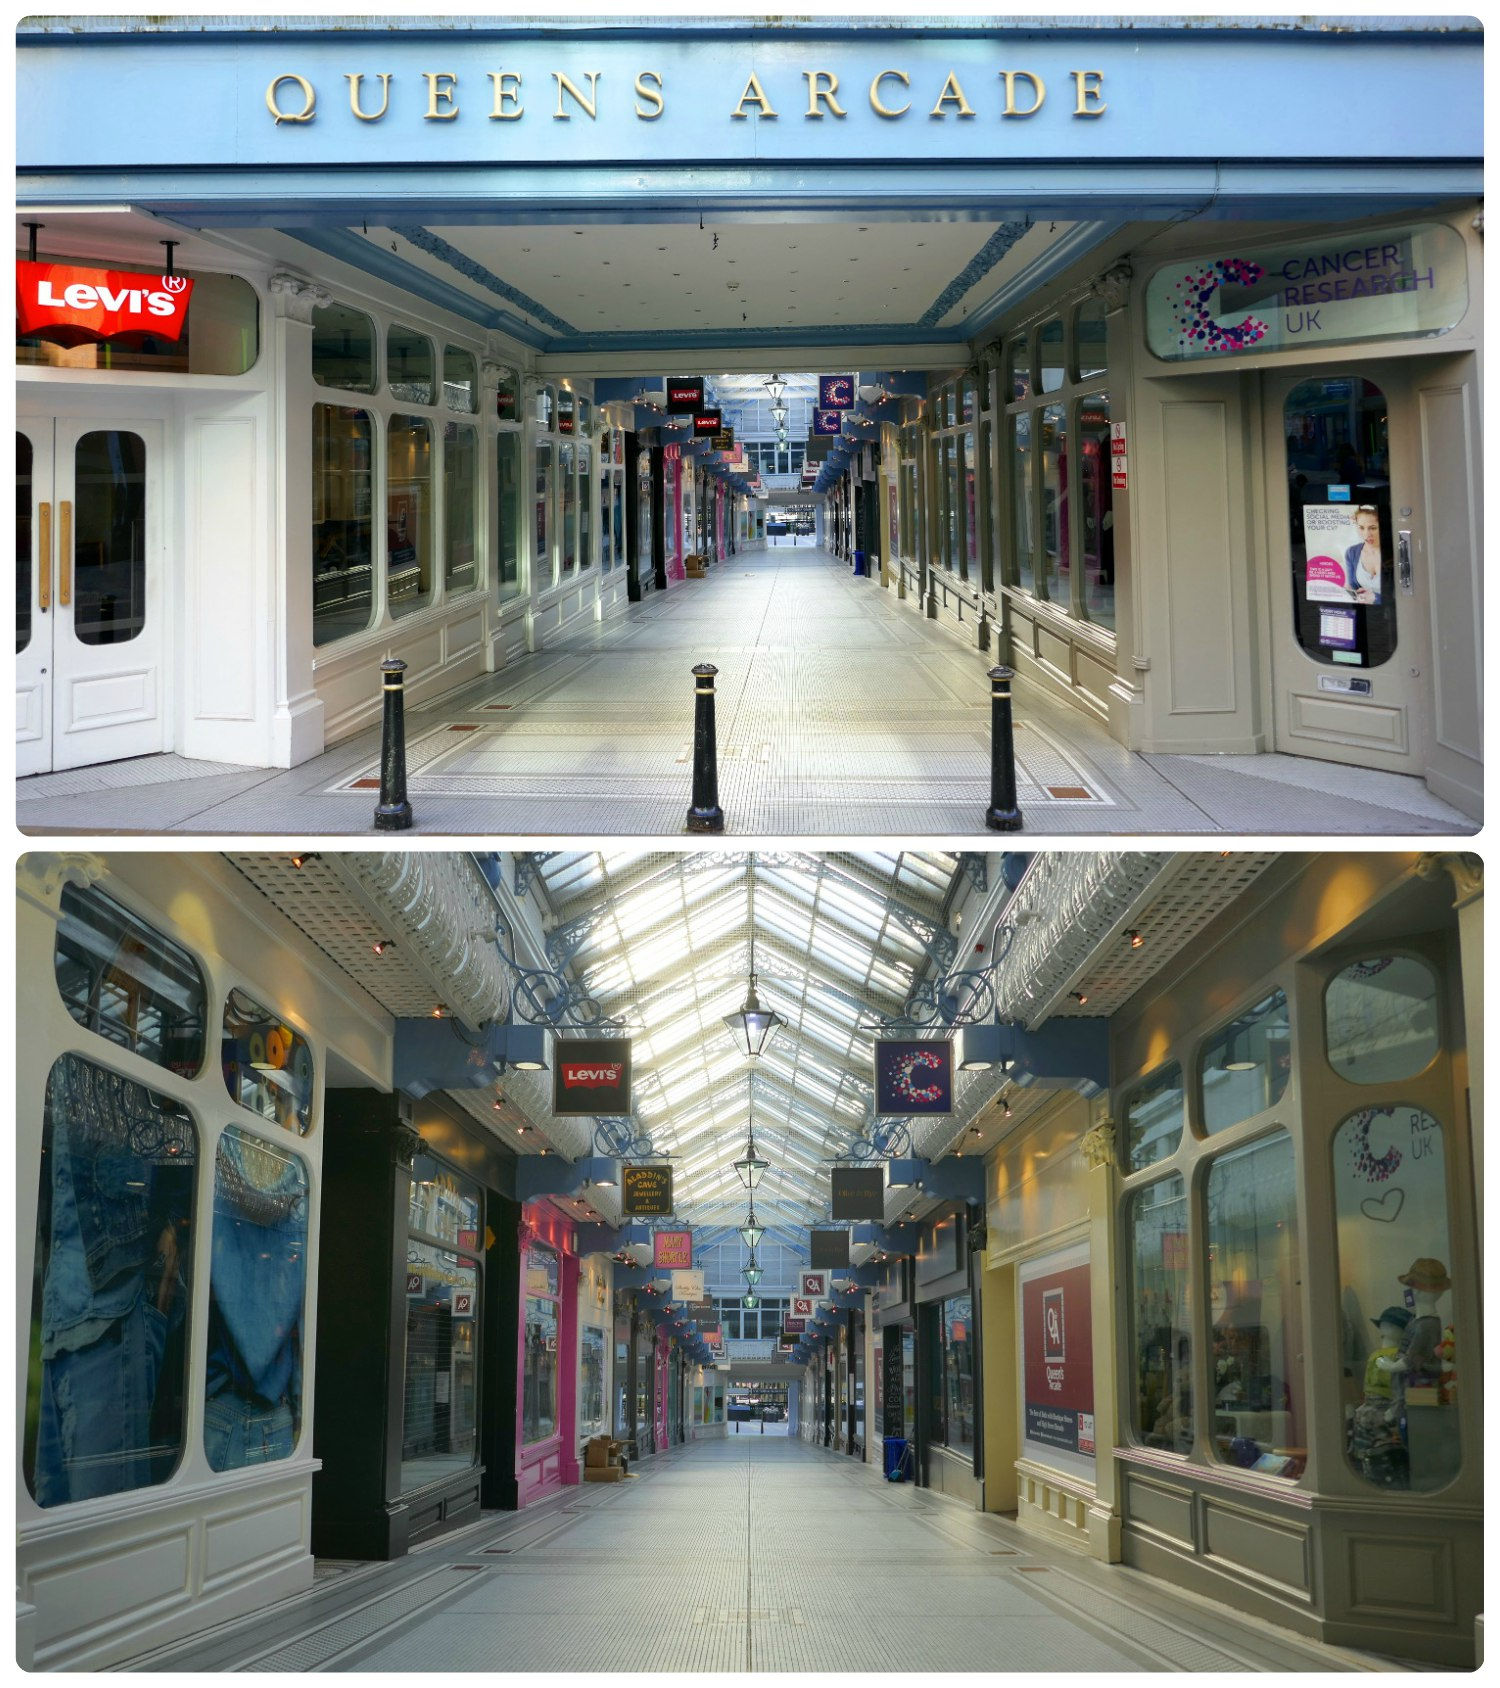 Queen's Arcade was the first arcade we visited on our sightseeing adventure.